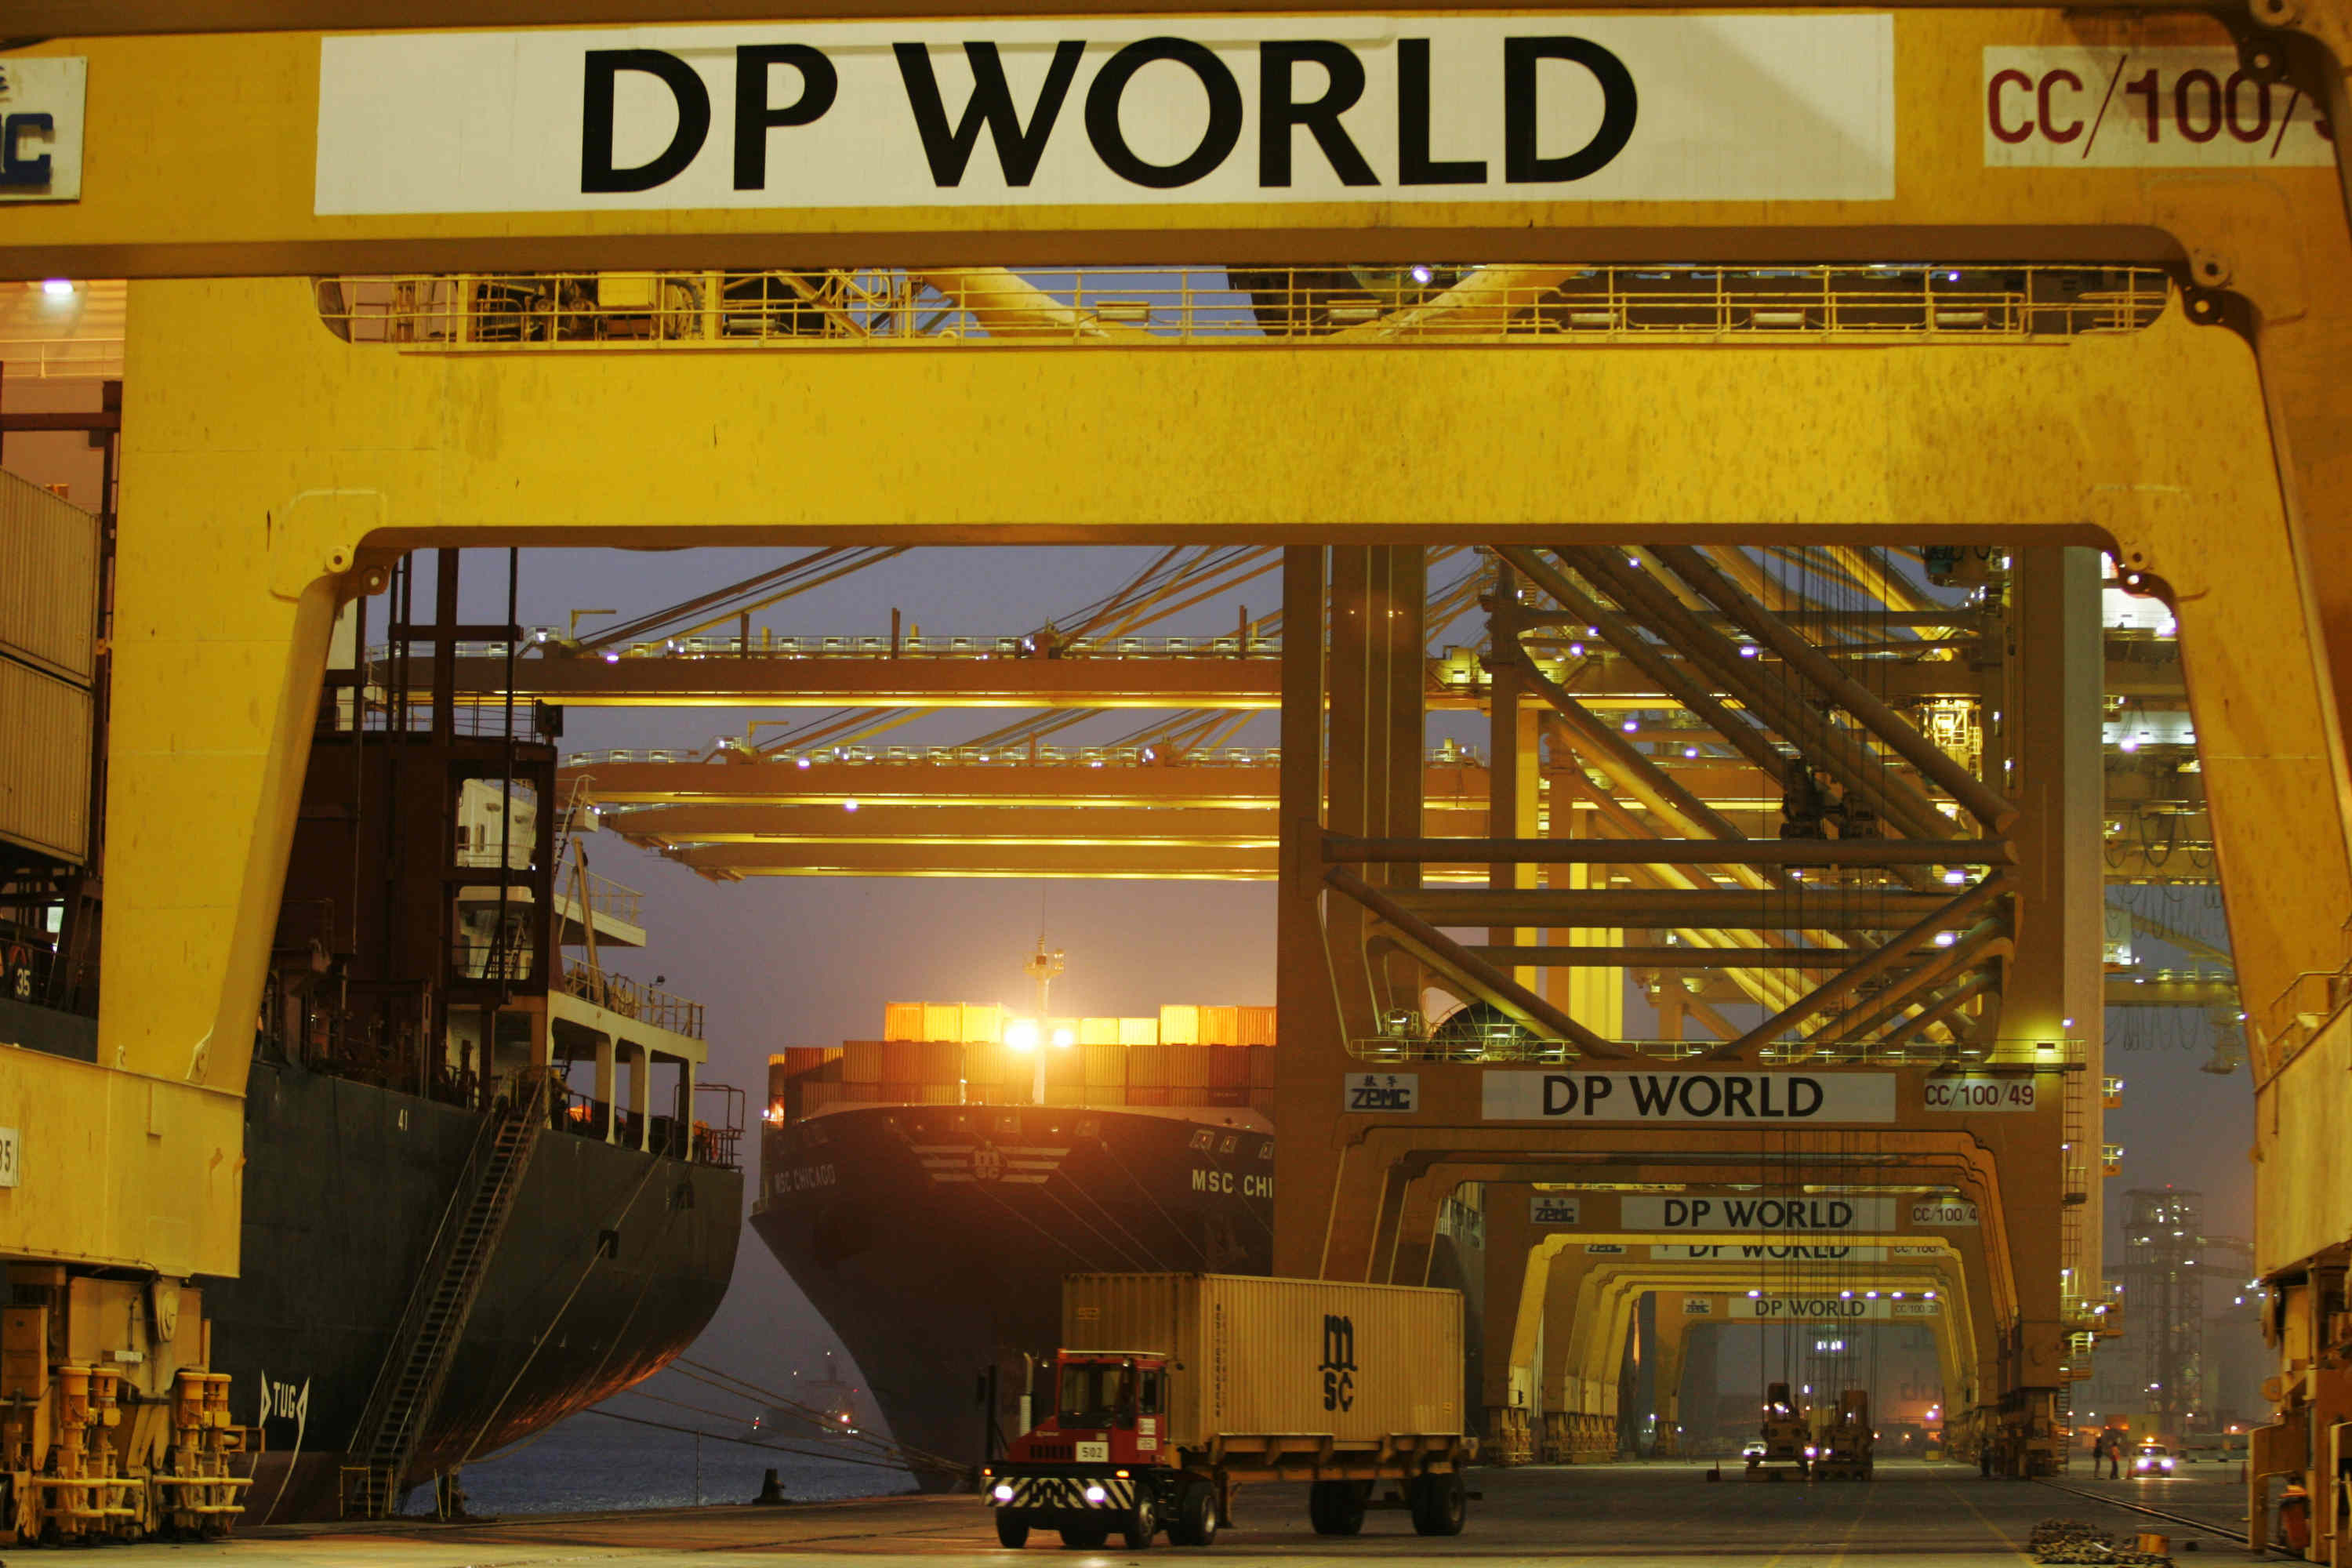 DP World volume handling up with 1.9% in 2018 1